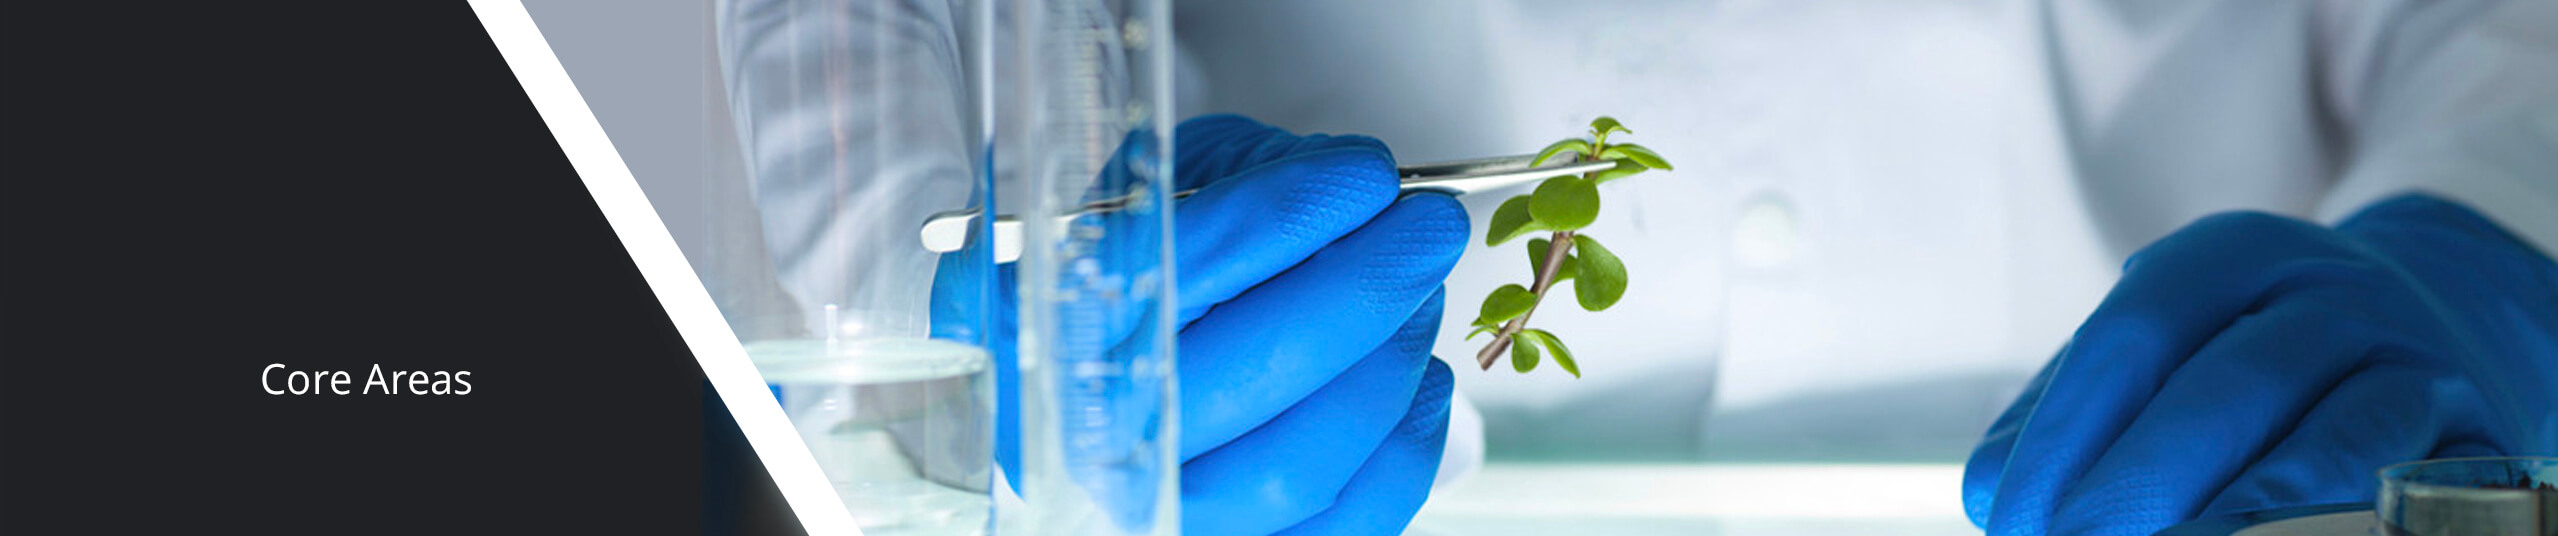 Scientist wearing gloves holding a plant stem with tweezers.